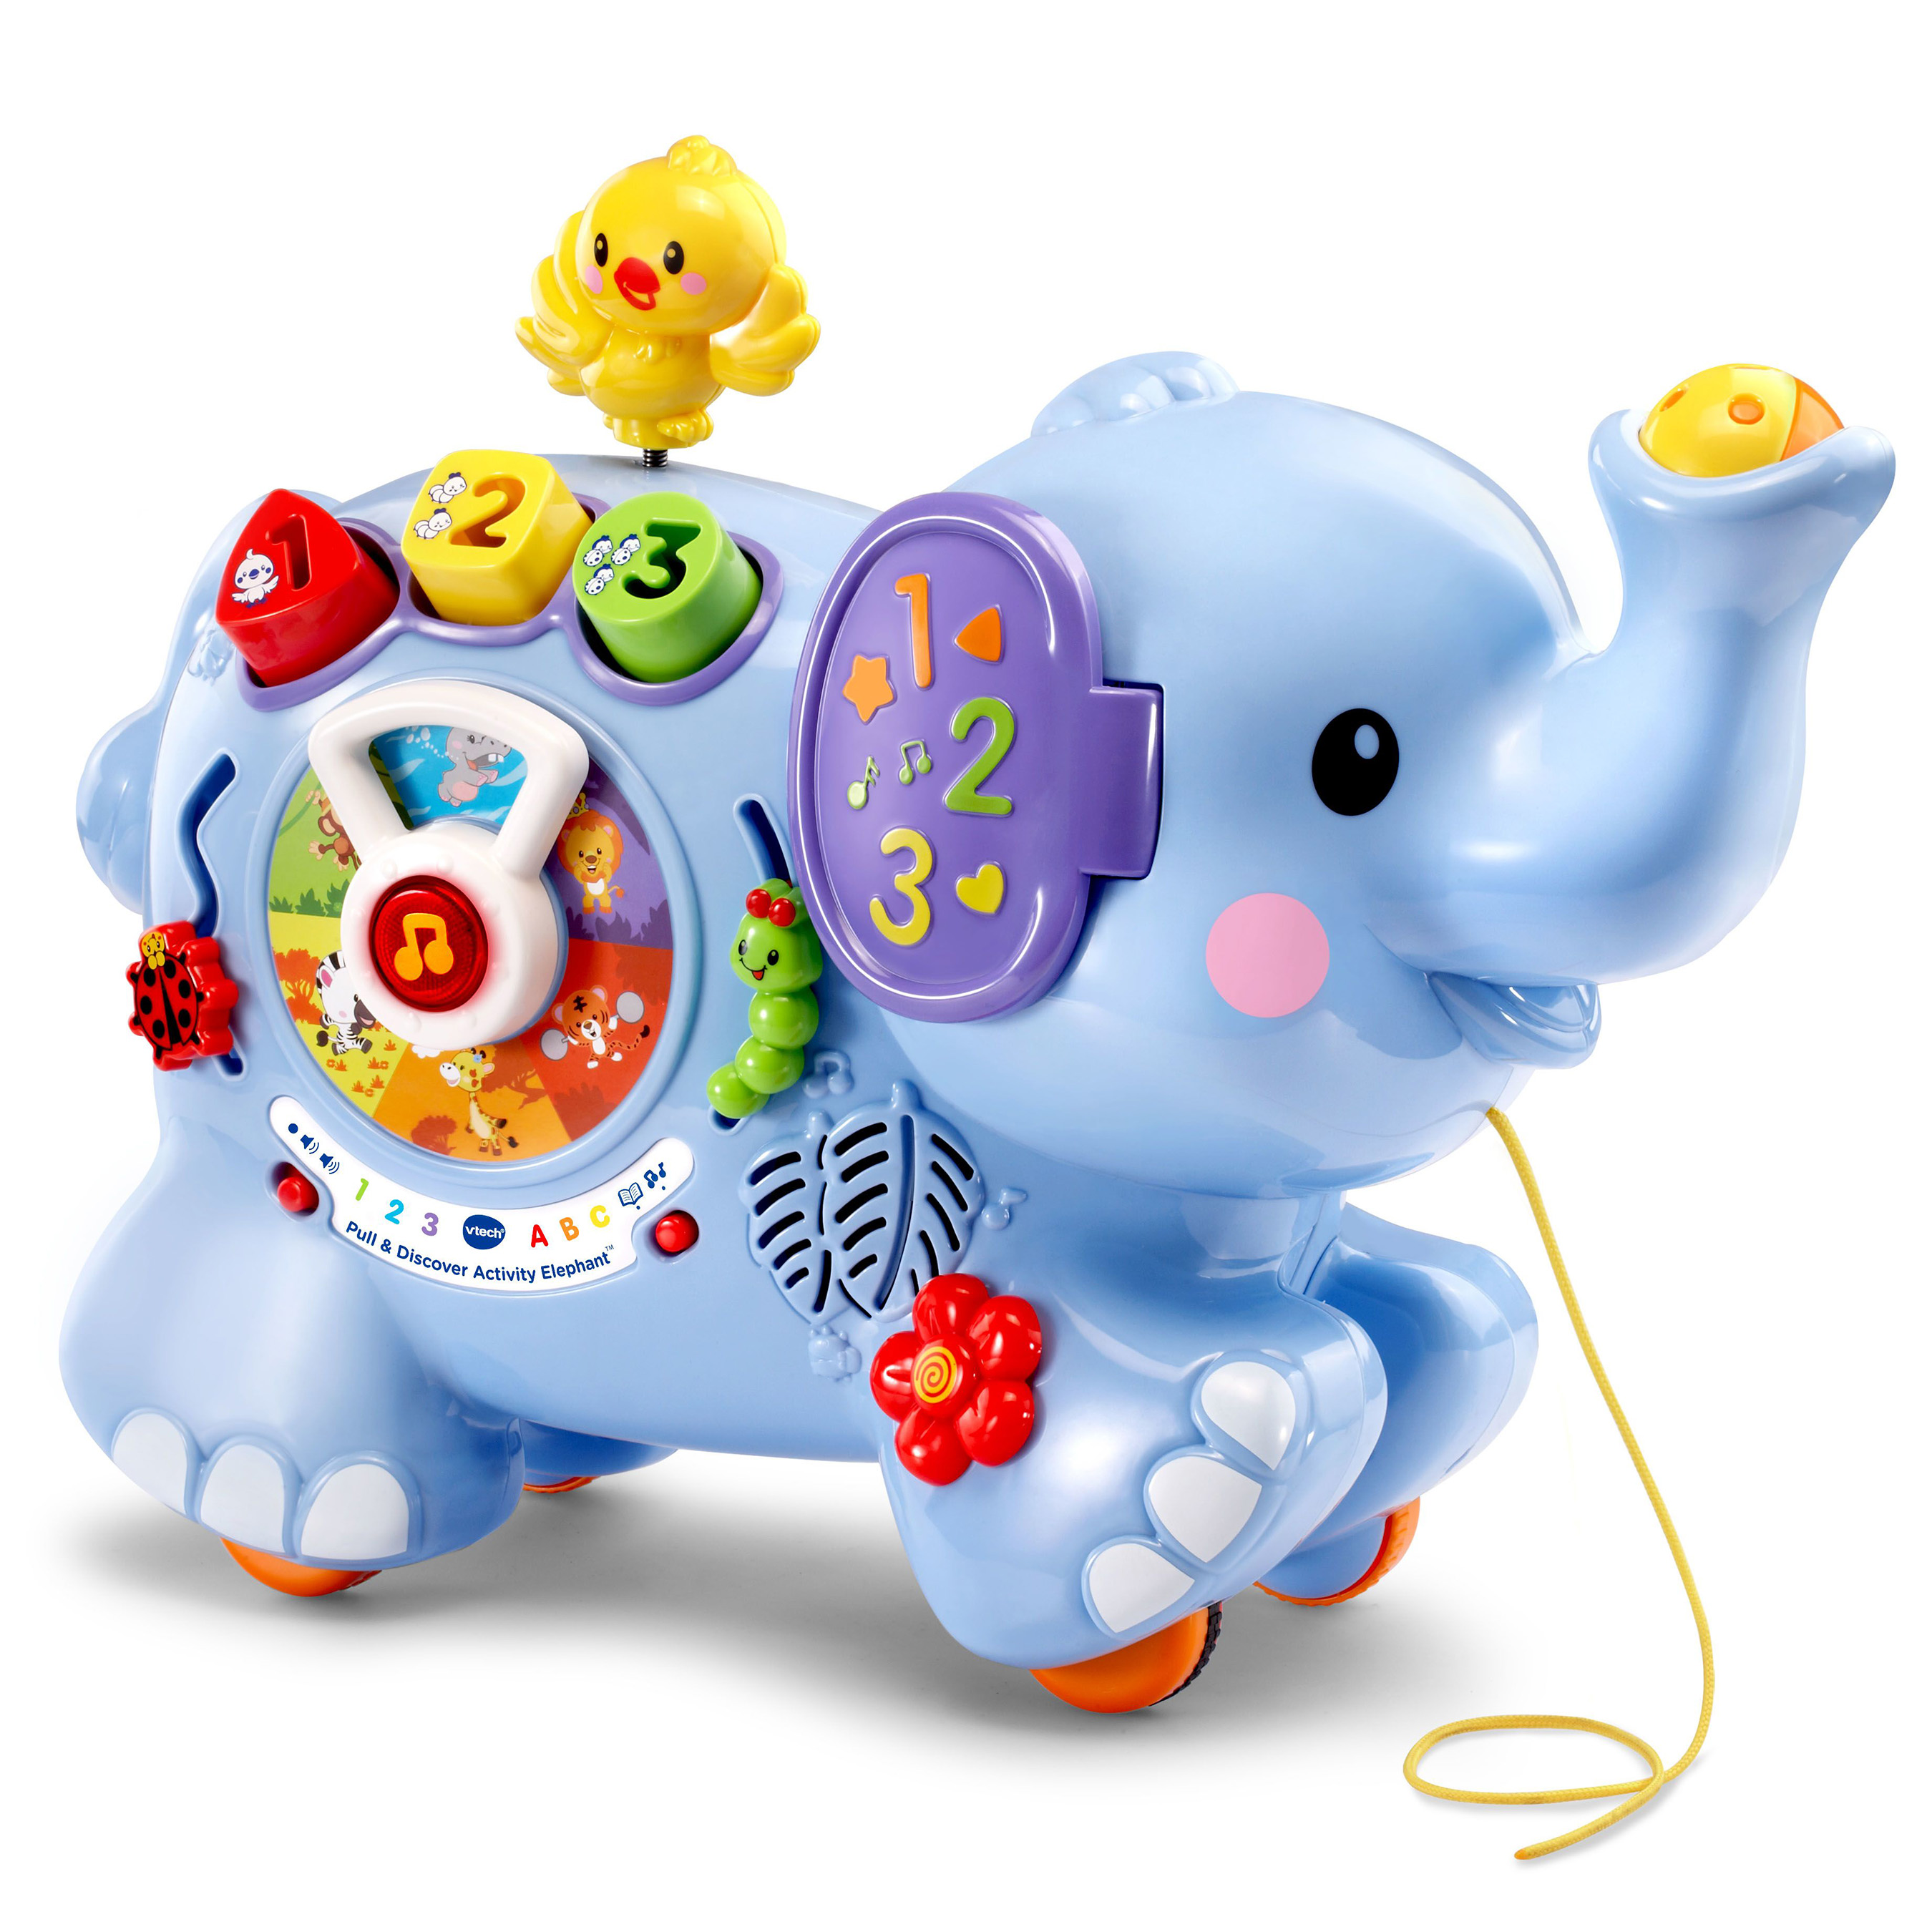 Toddler Toys Physical Toys : New baby infant toddler and preschool collections from